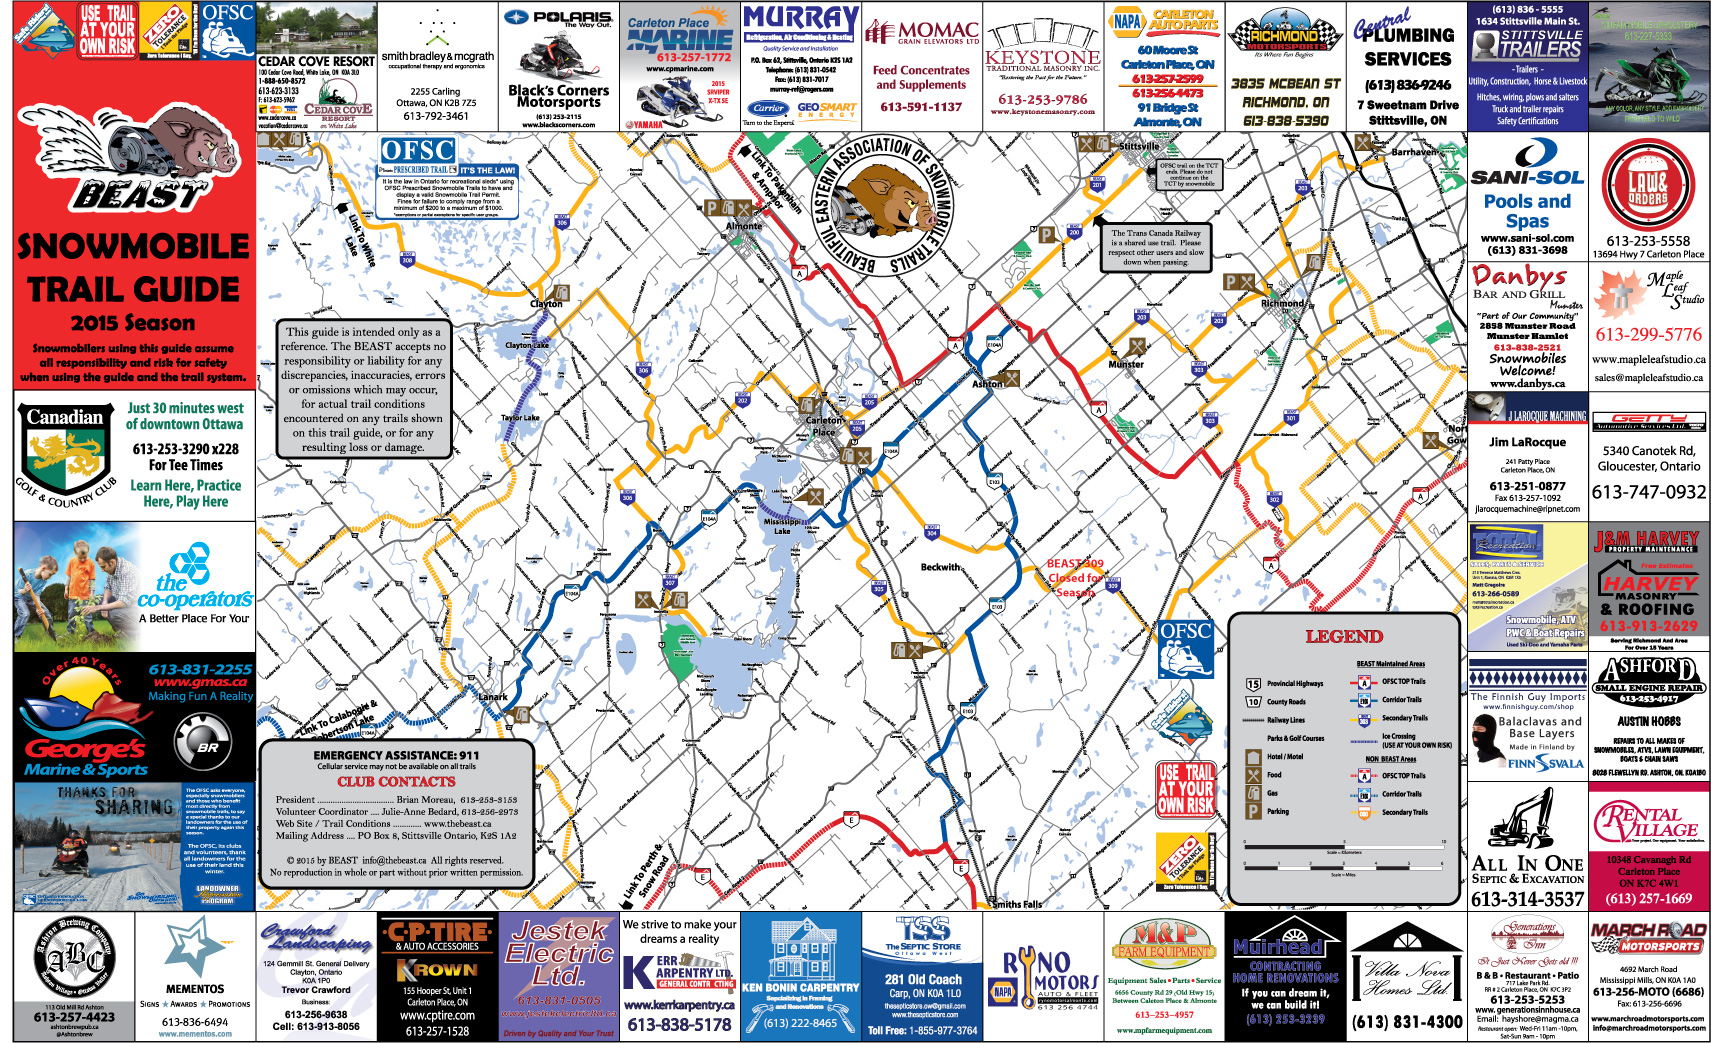 Trail Guide (Maps) – The BEAST